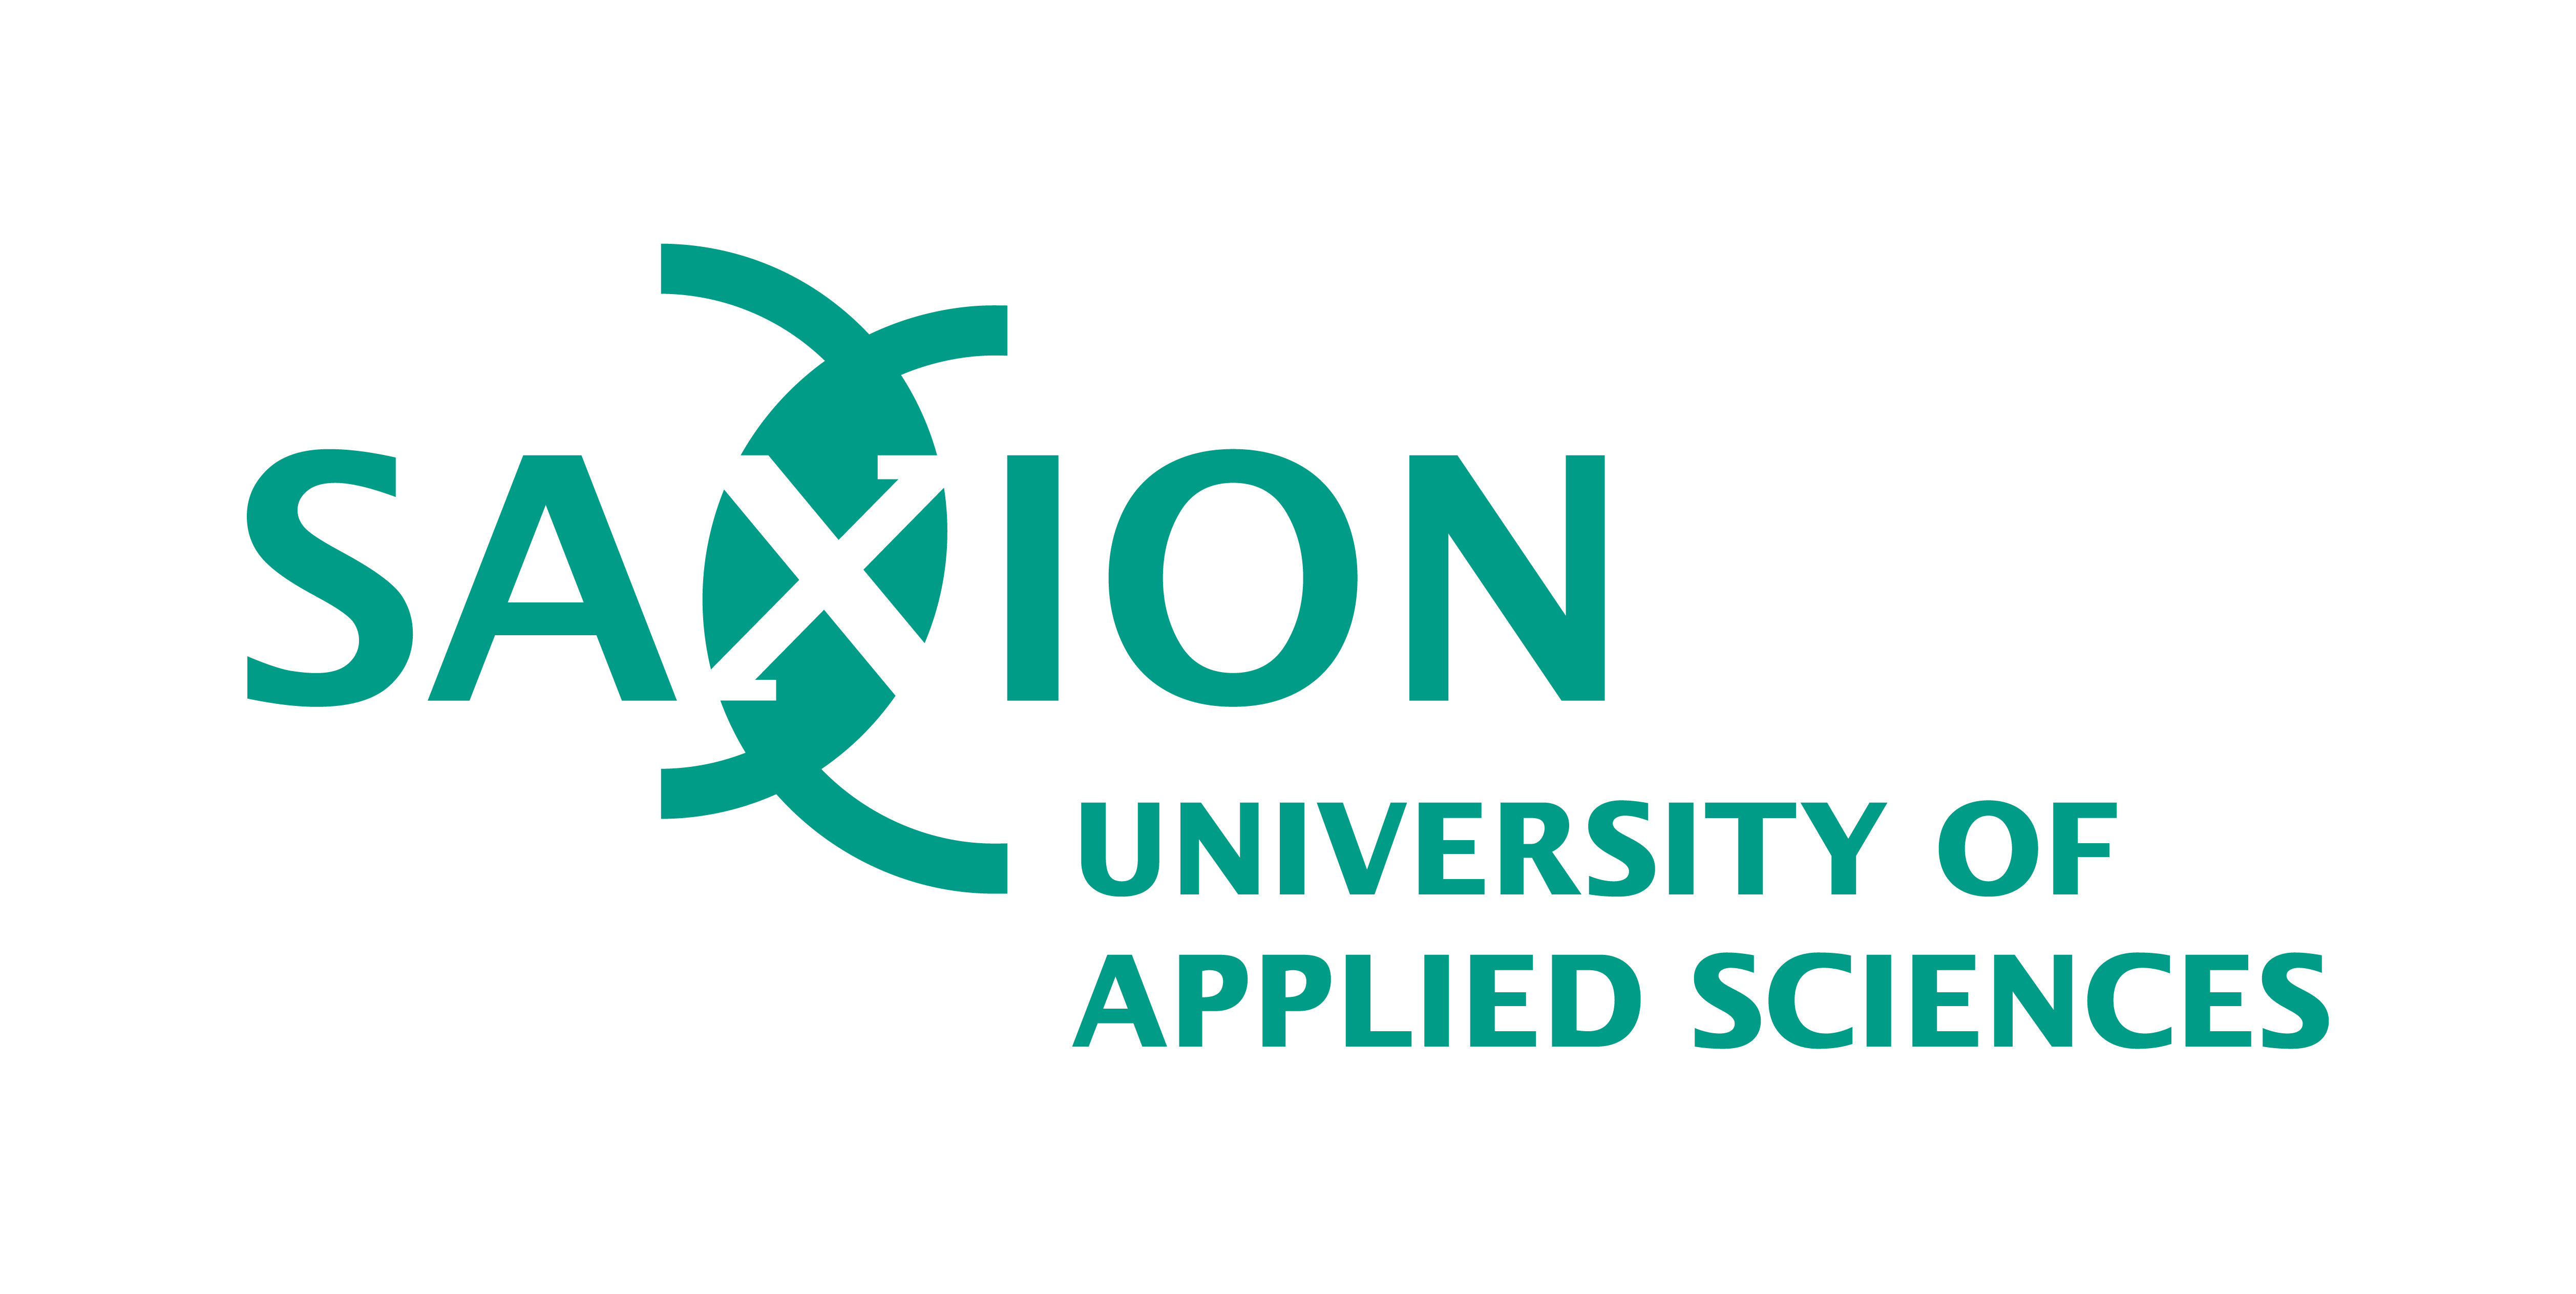 Saxion University of Applied Sciences logo